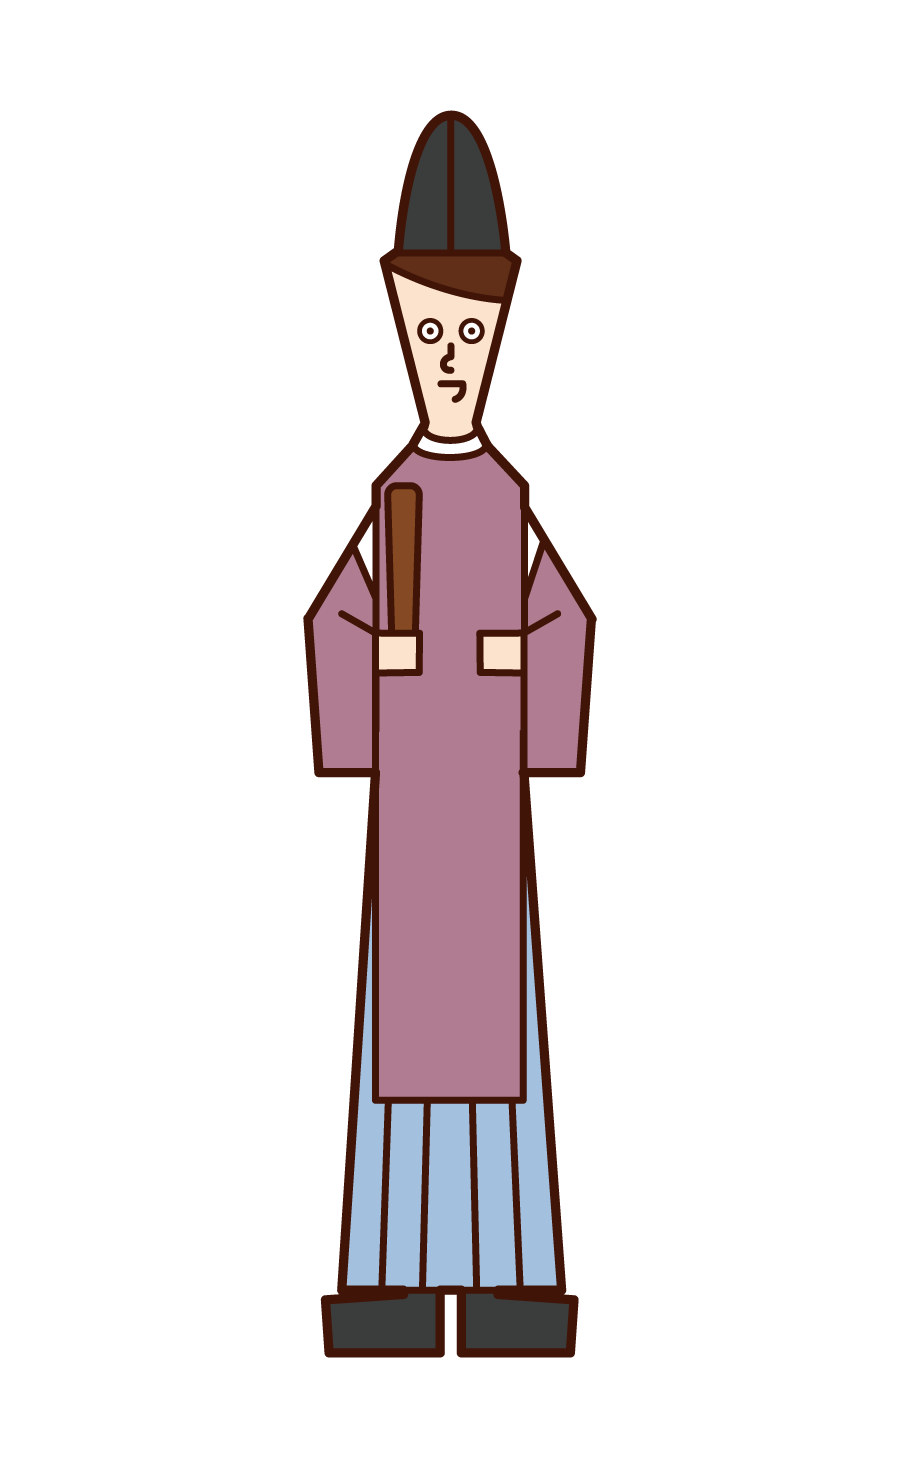 Illustration of priests and priests (man)